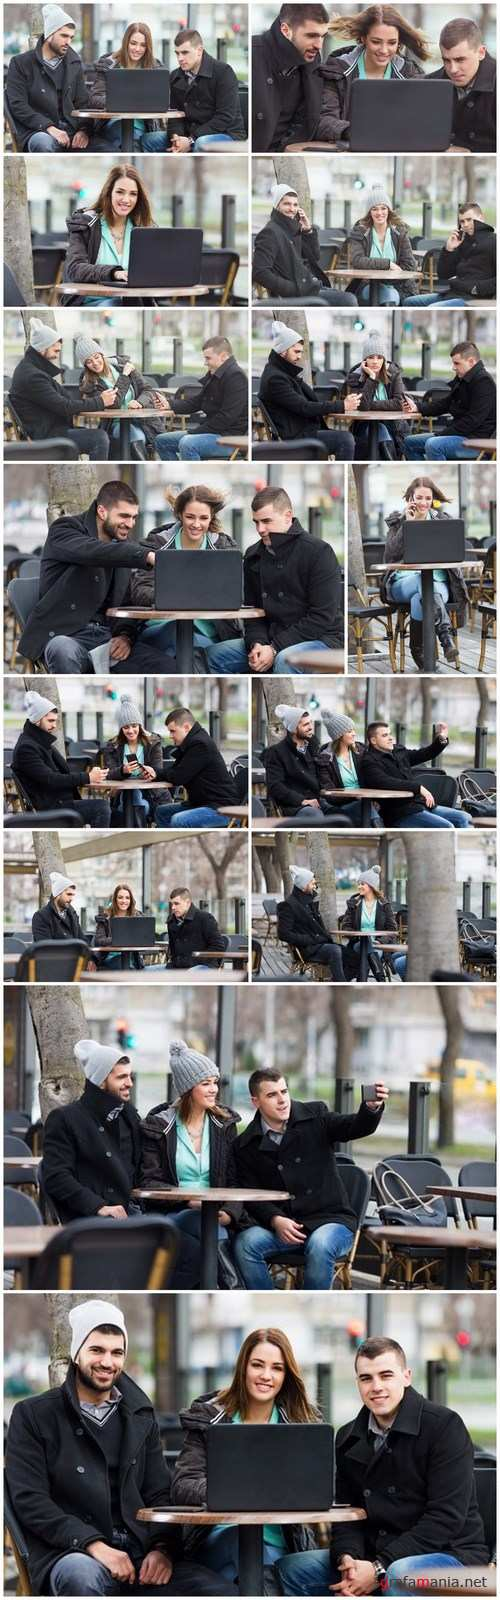 Group of students is sitting in an outdoor cafe and using laptop - 14xUHQ JPEG Photo Stock